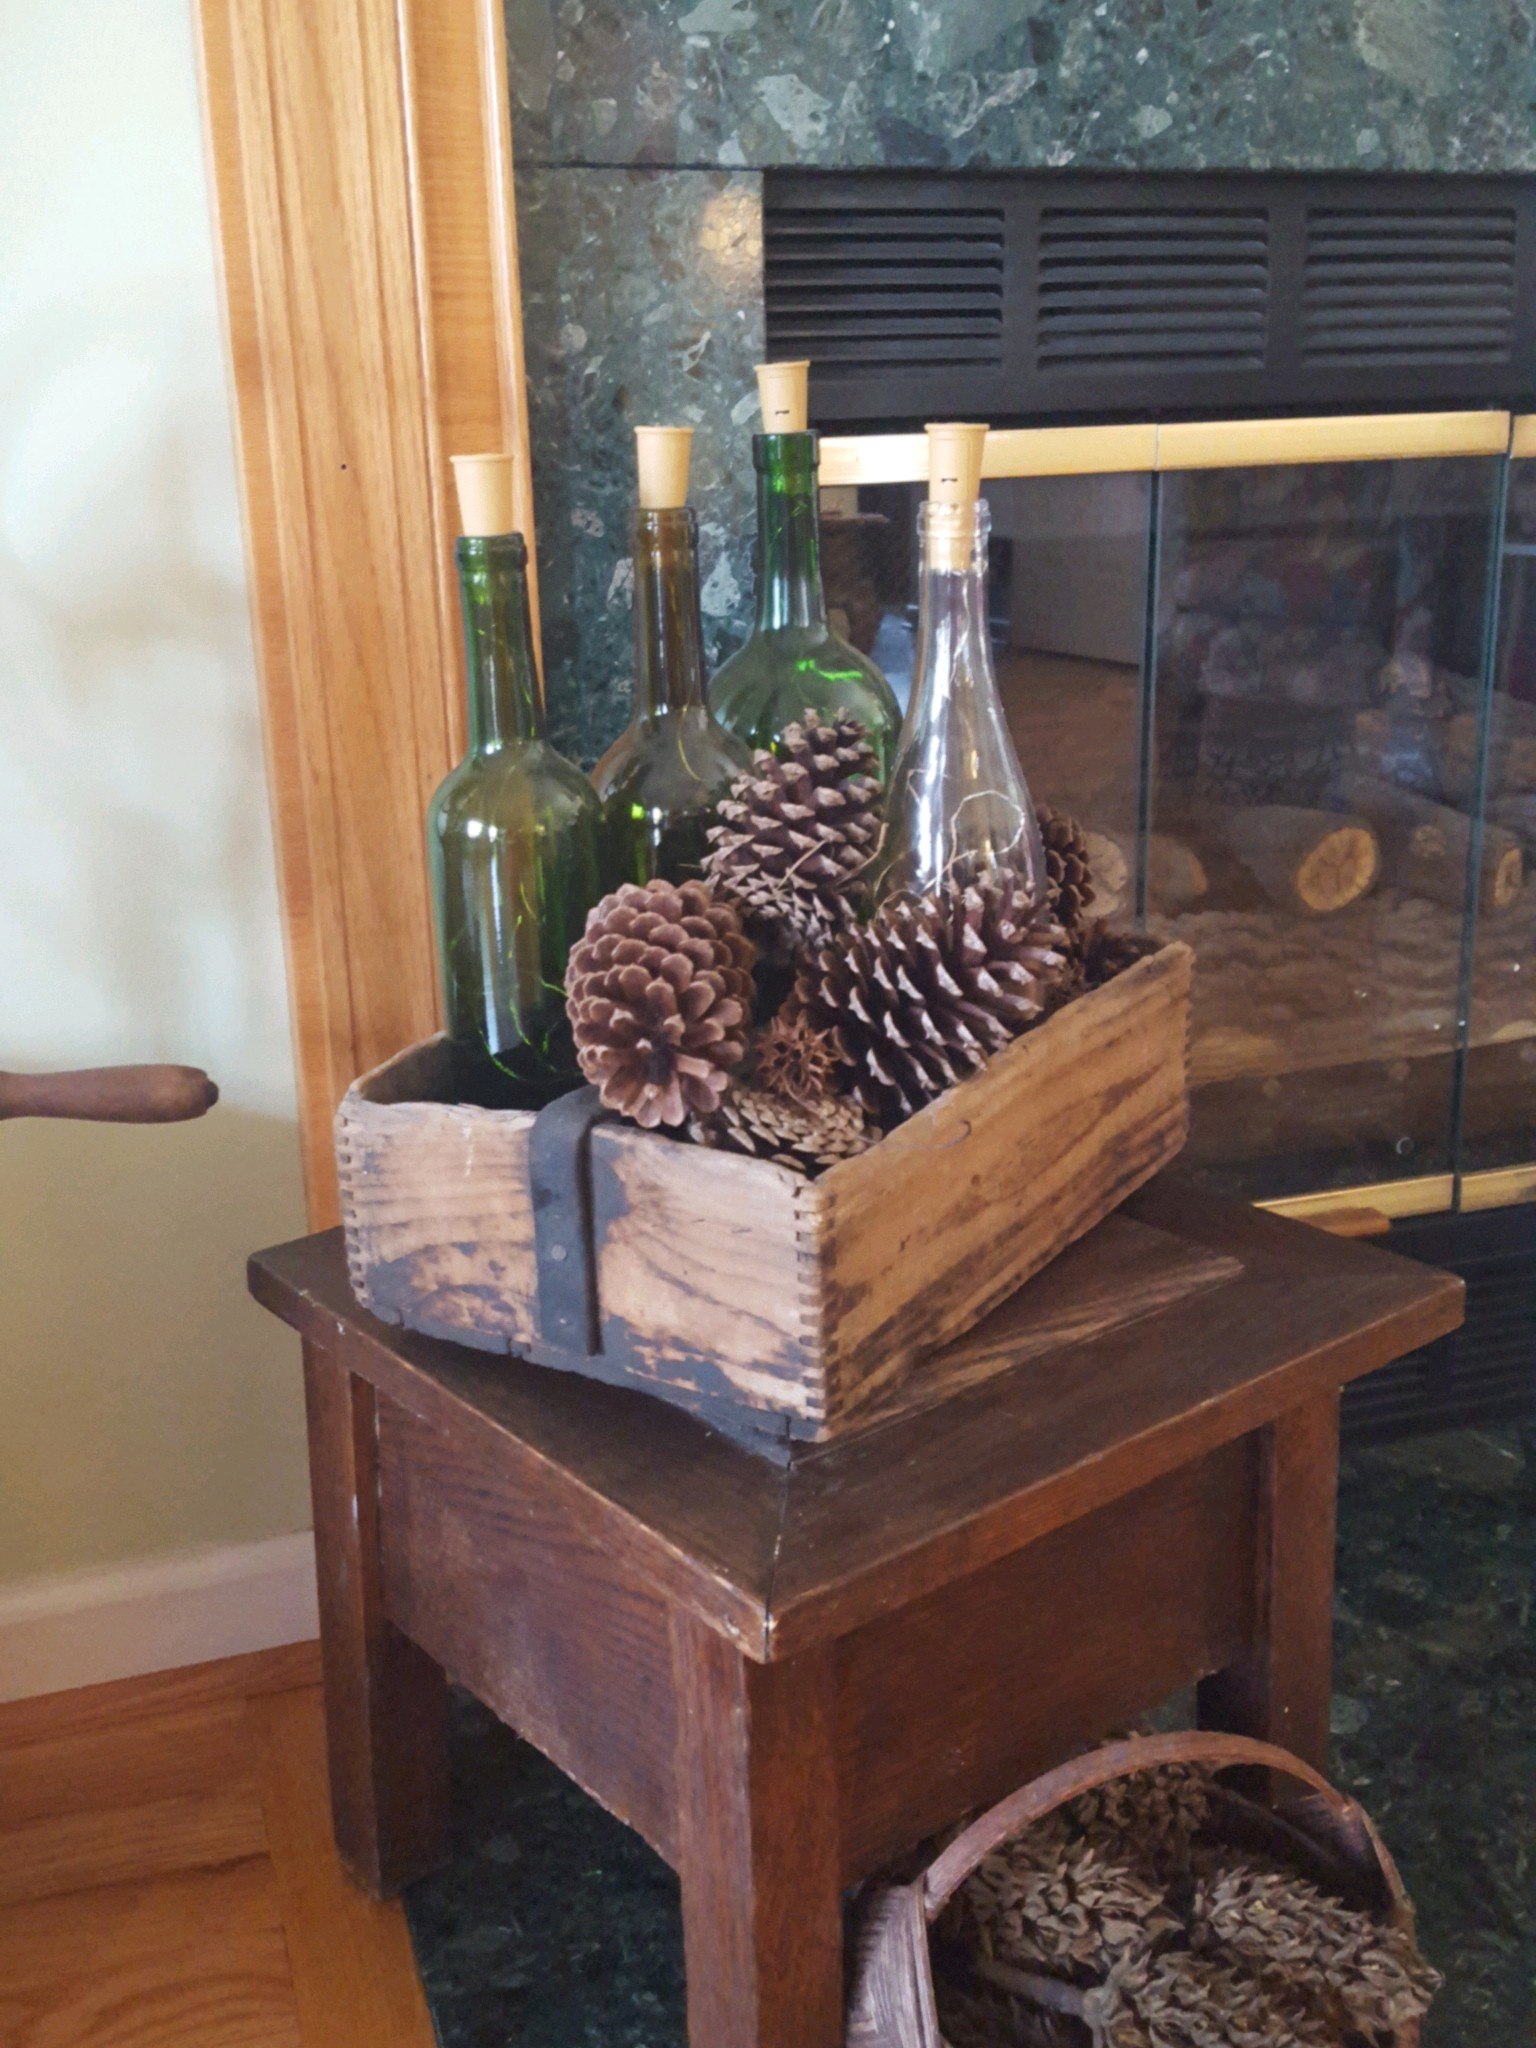 Vintage Toolbox decorated with wine bottles and pinecones